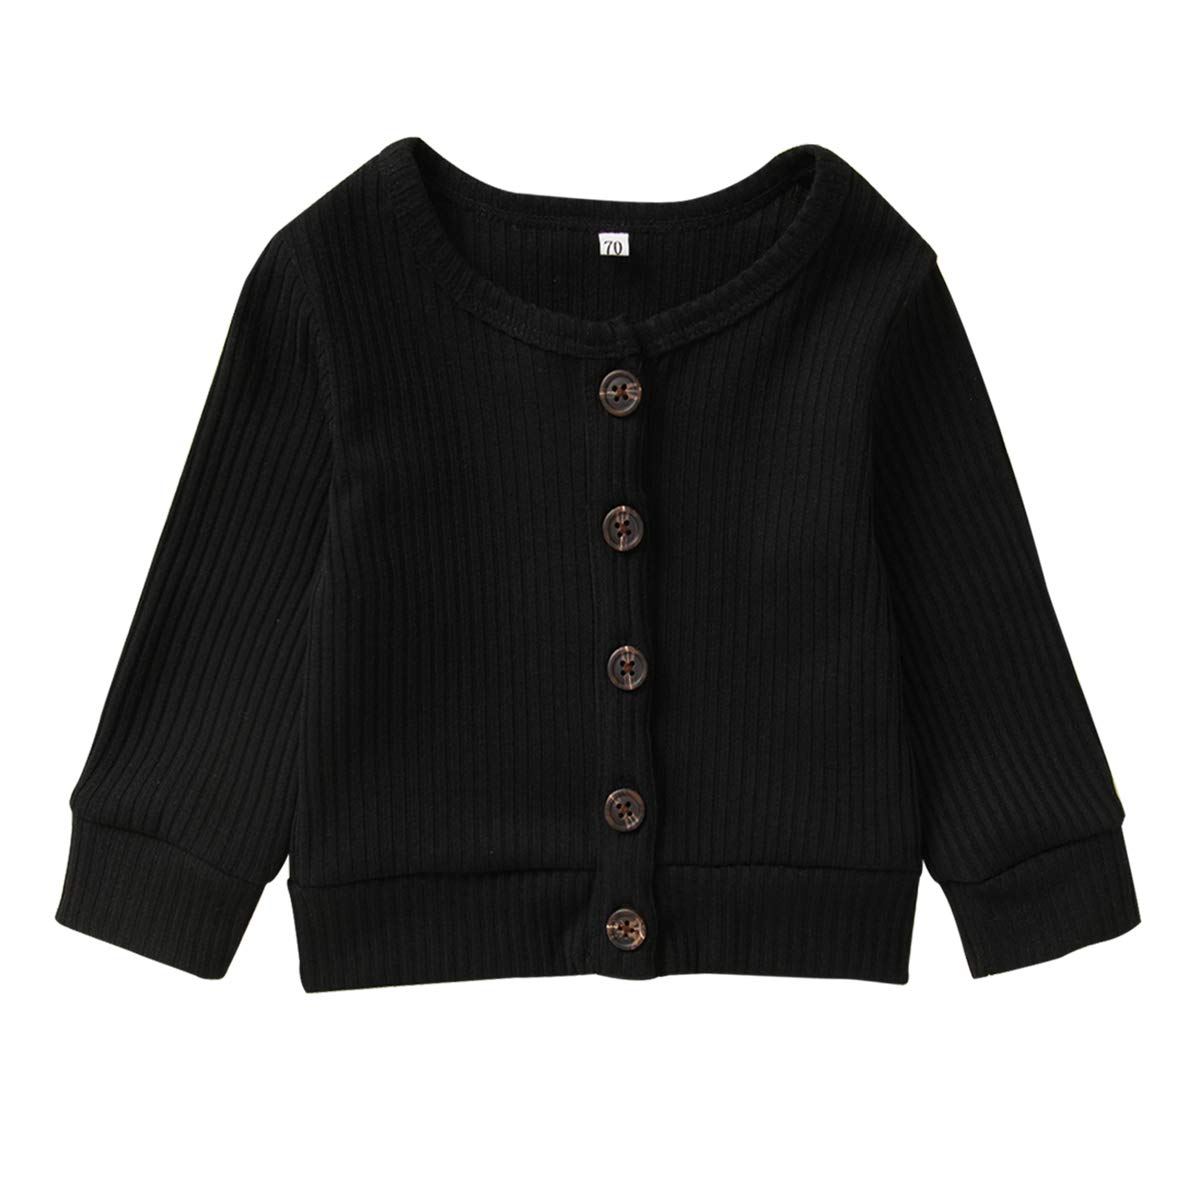 Newborn Infrant Baby Girl Boy Clothes Long Sleeve Button Down Cotton Knitted Sweater Cardigan Coat Fall Winter Outfits